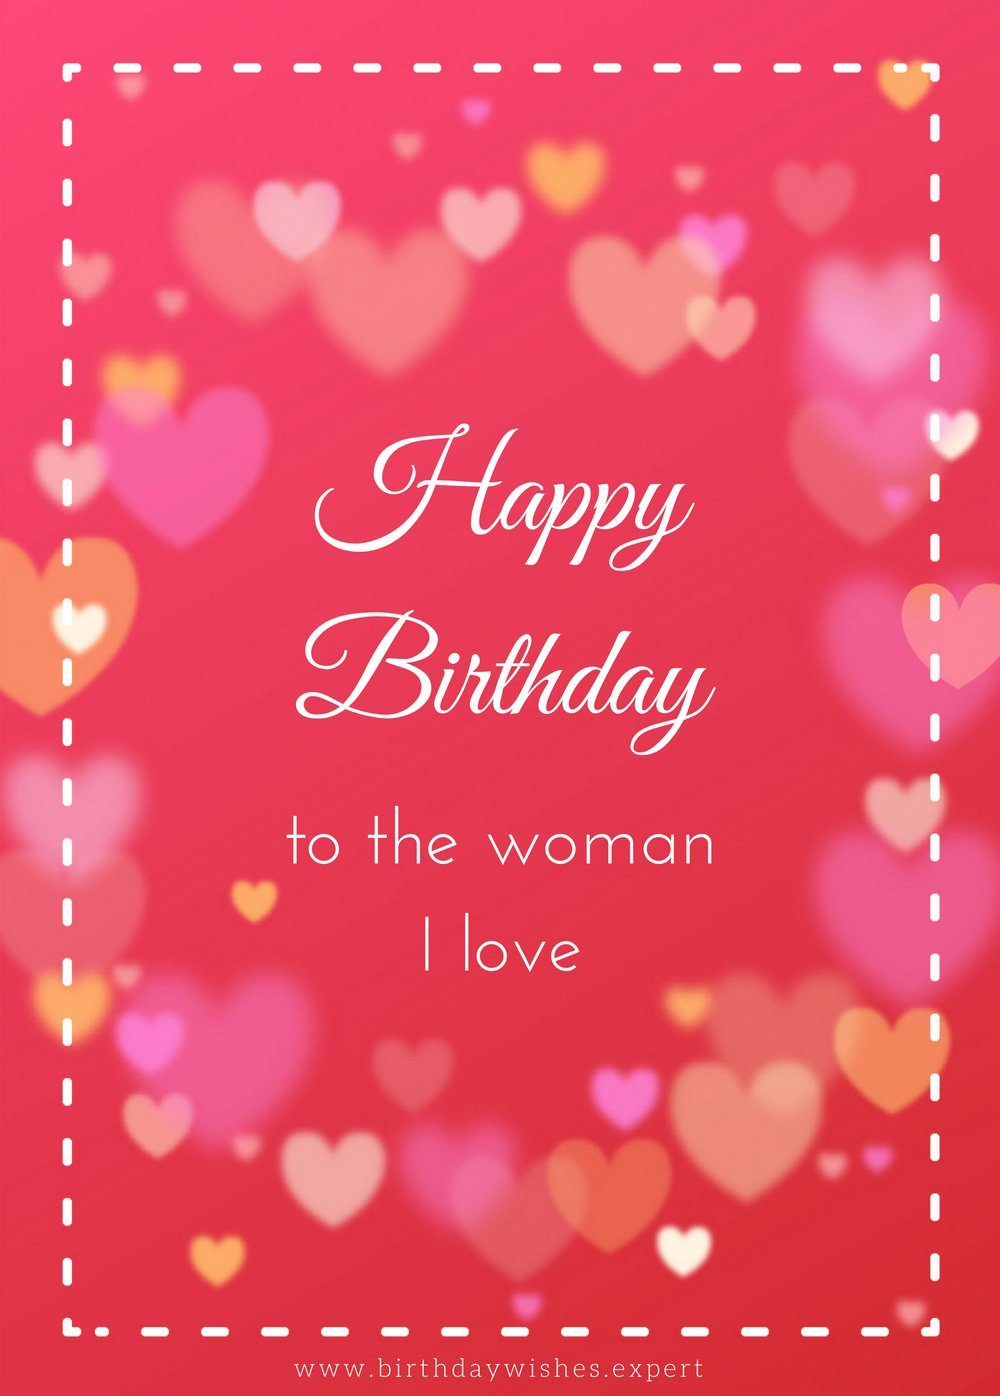 Top 120 birthday wishes for your wife happy birthday to the woman i love m4hsunfo